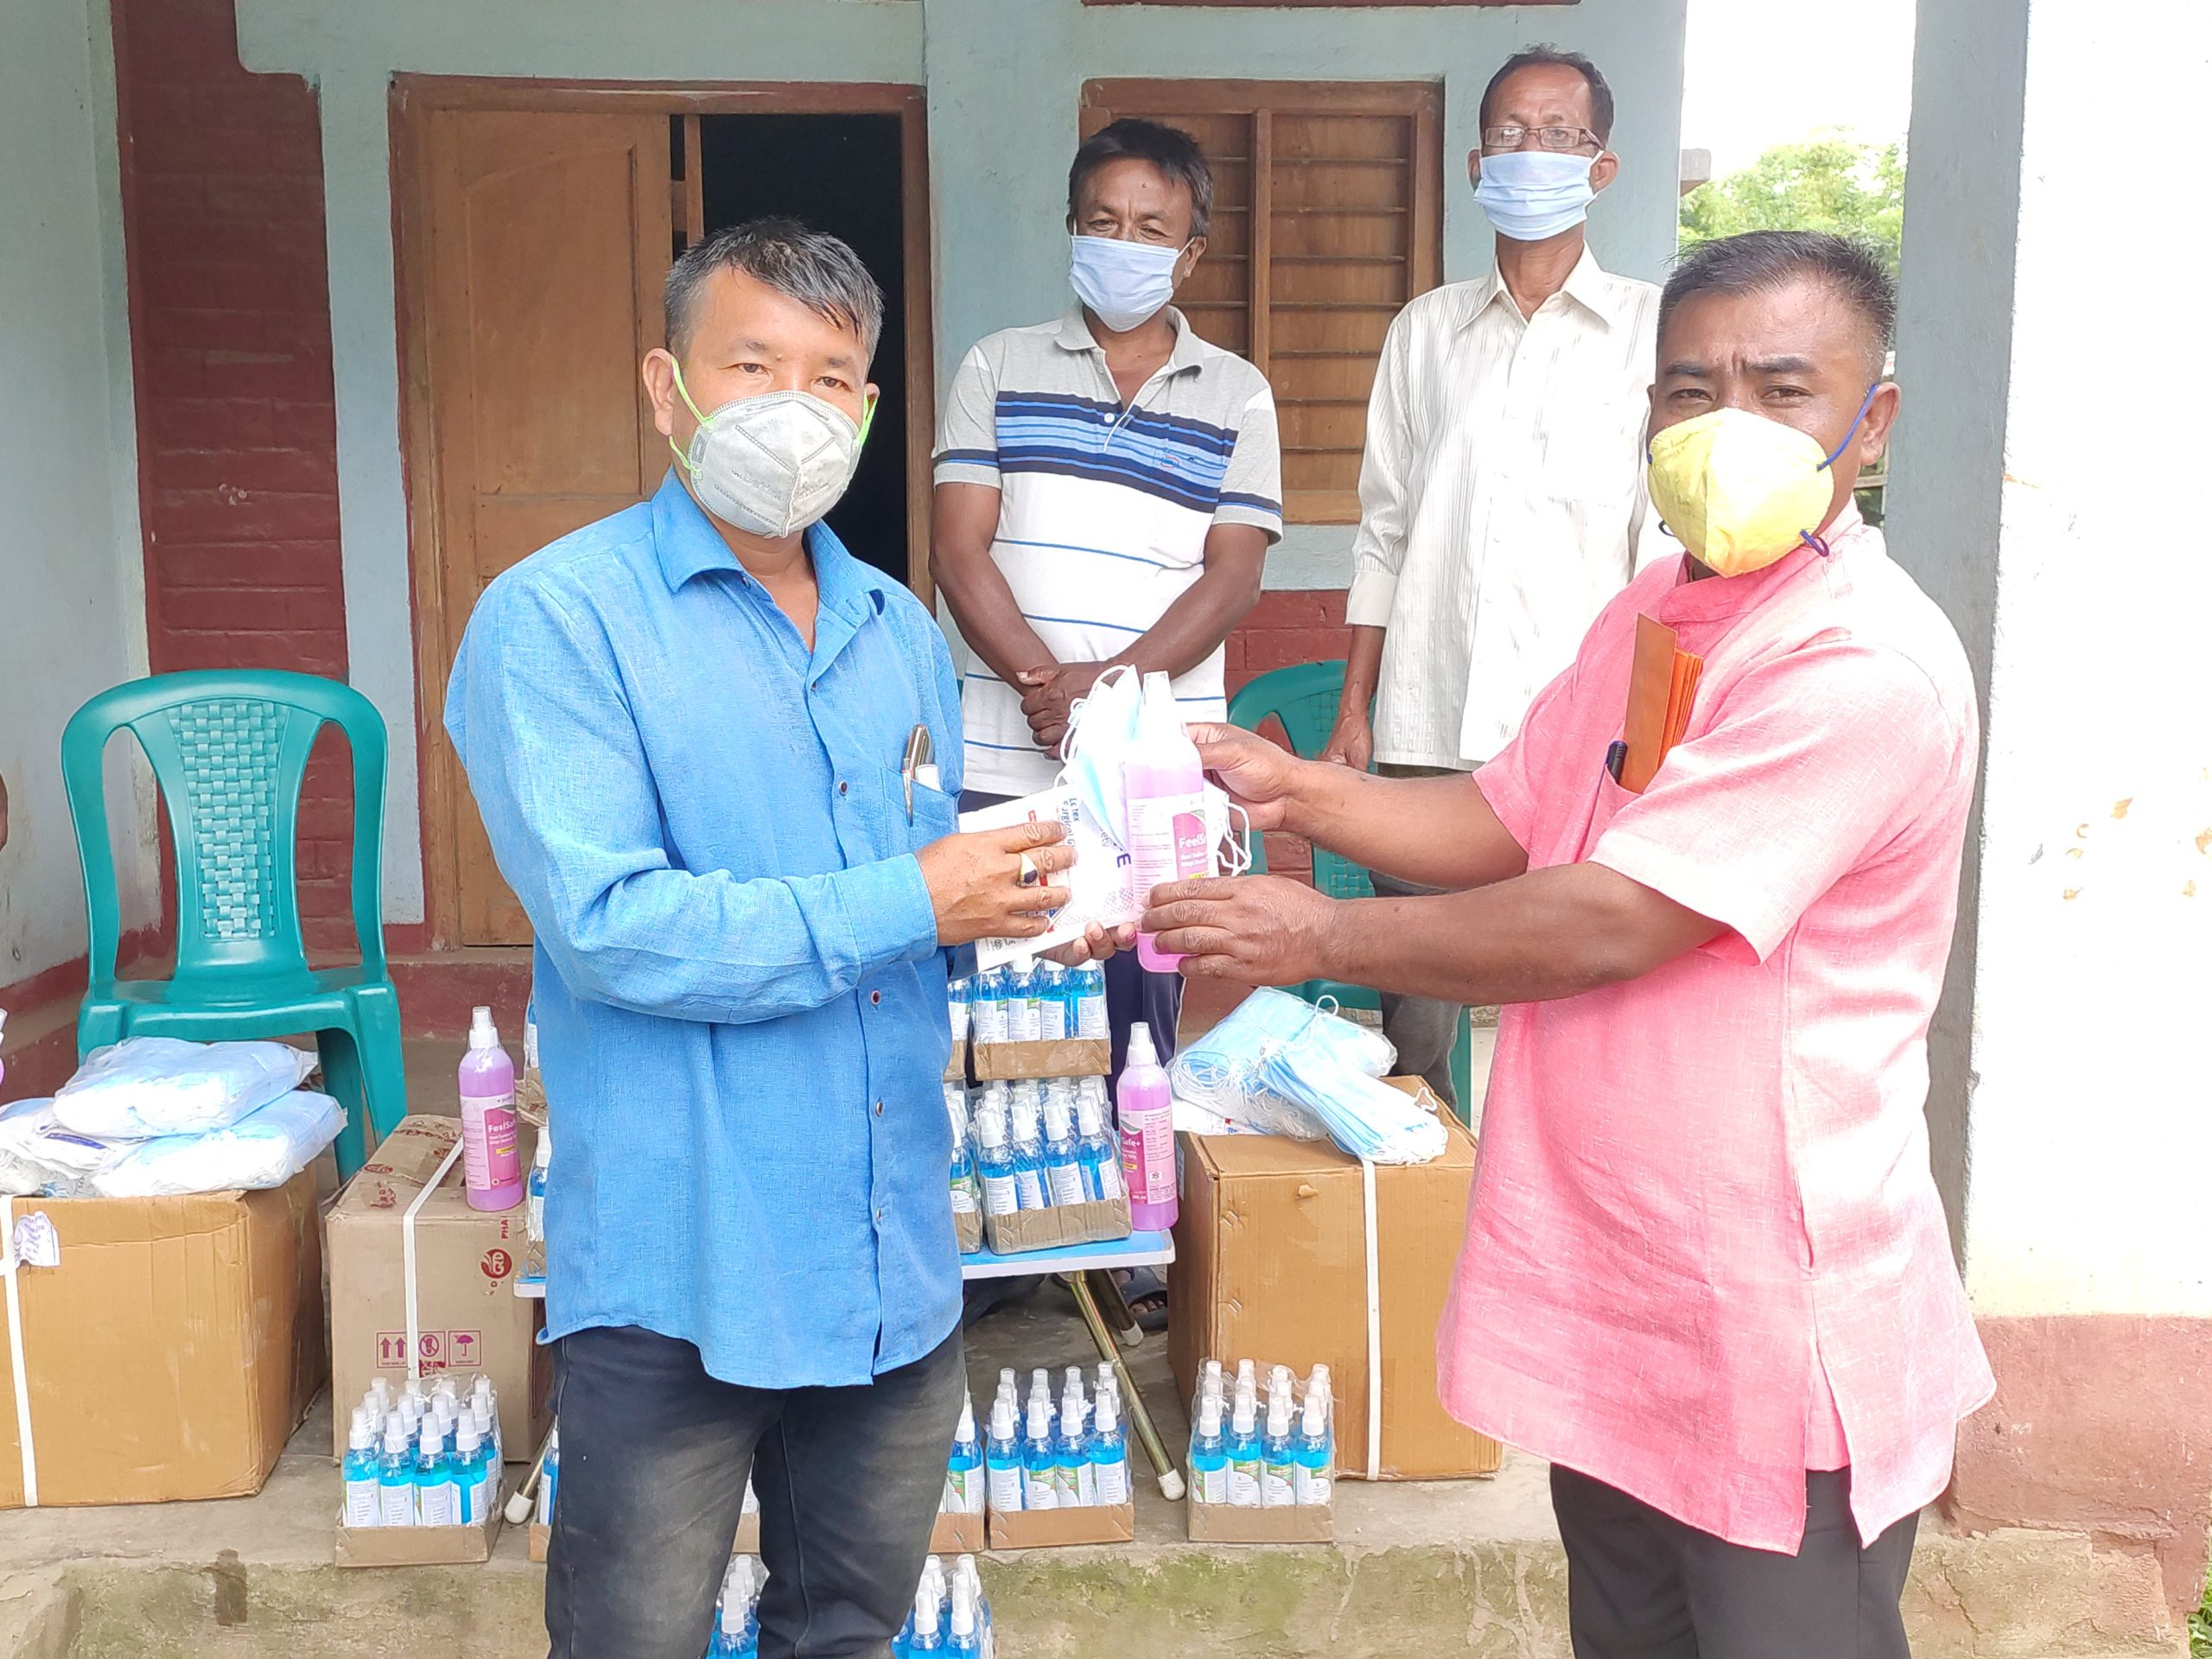 Mask, hand sanitizer distributed